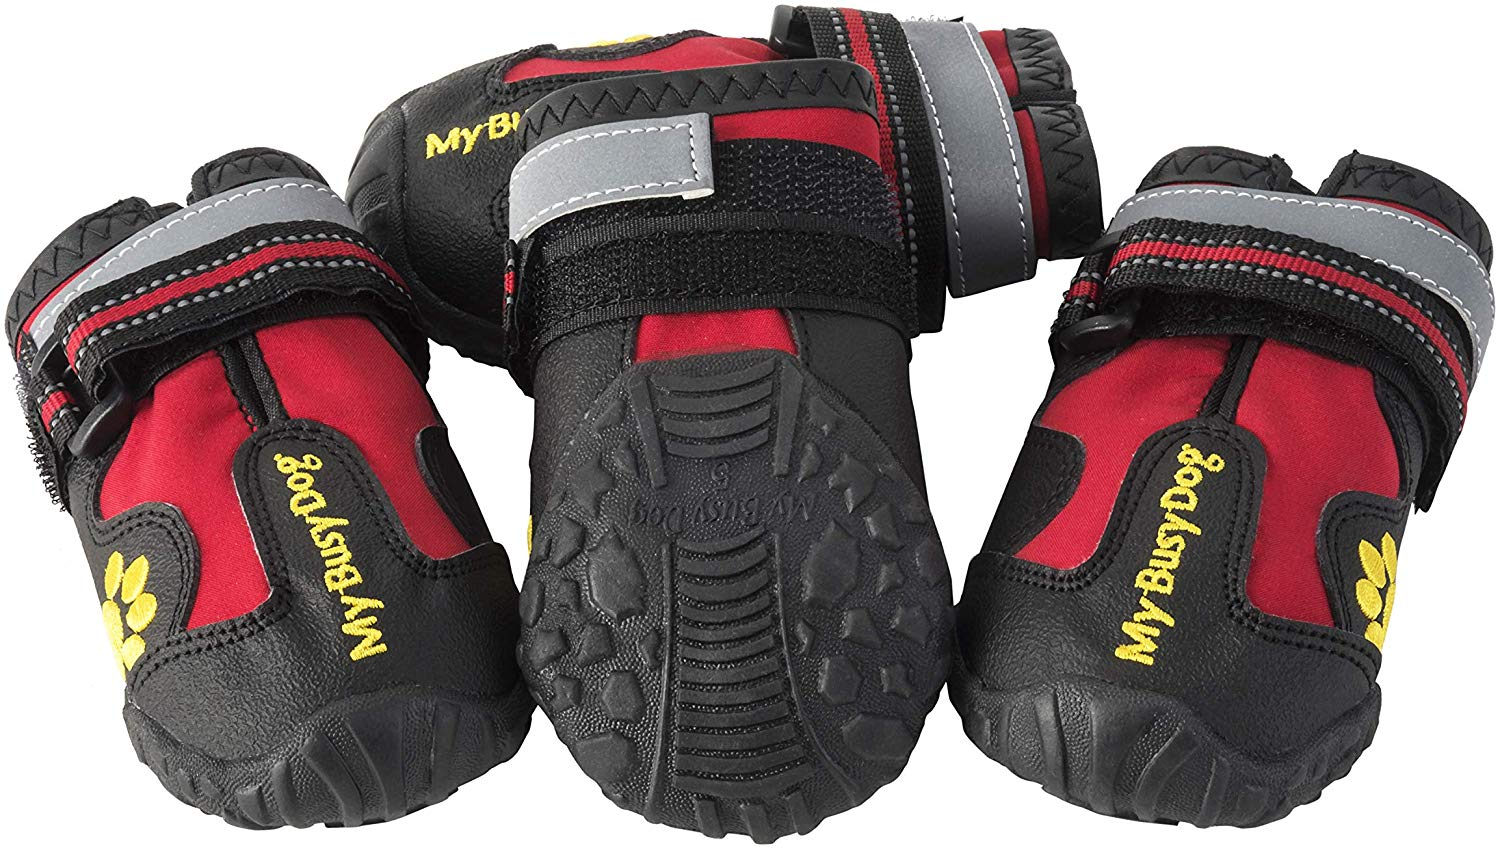 dog snow boots,shoes,stay on,best dog boots,for winter,for snow,booties for snow,waterproof,for summer,hot pavement,leather